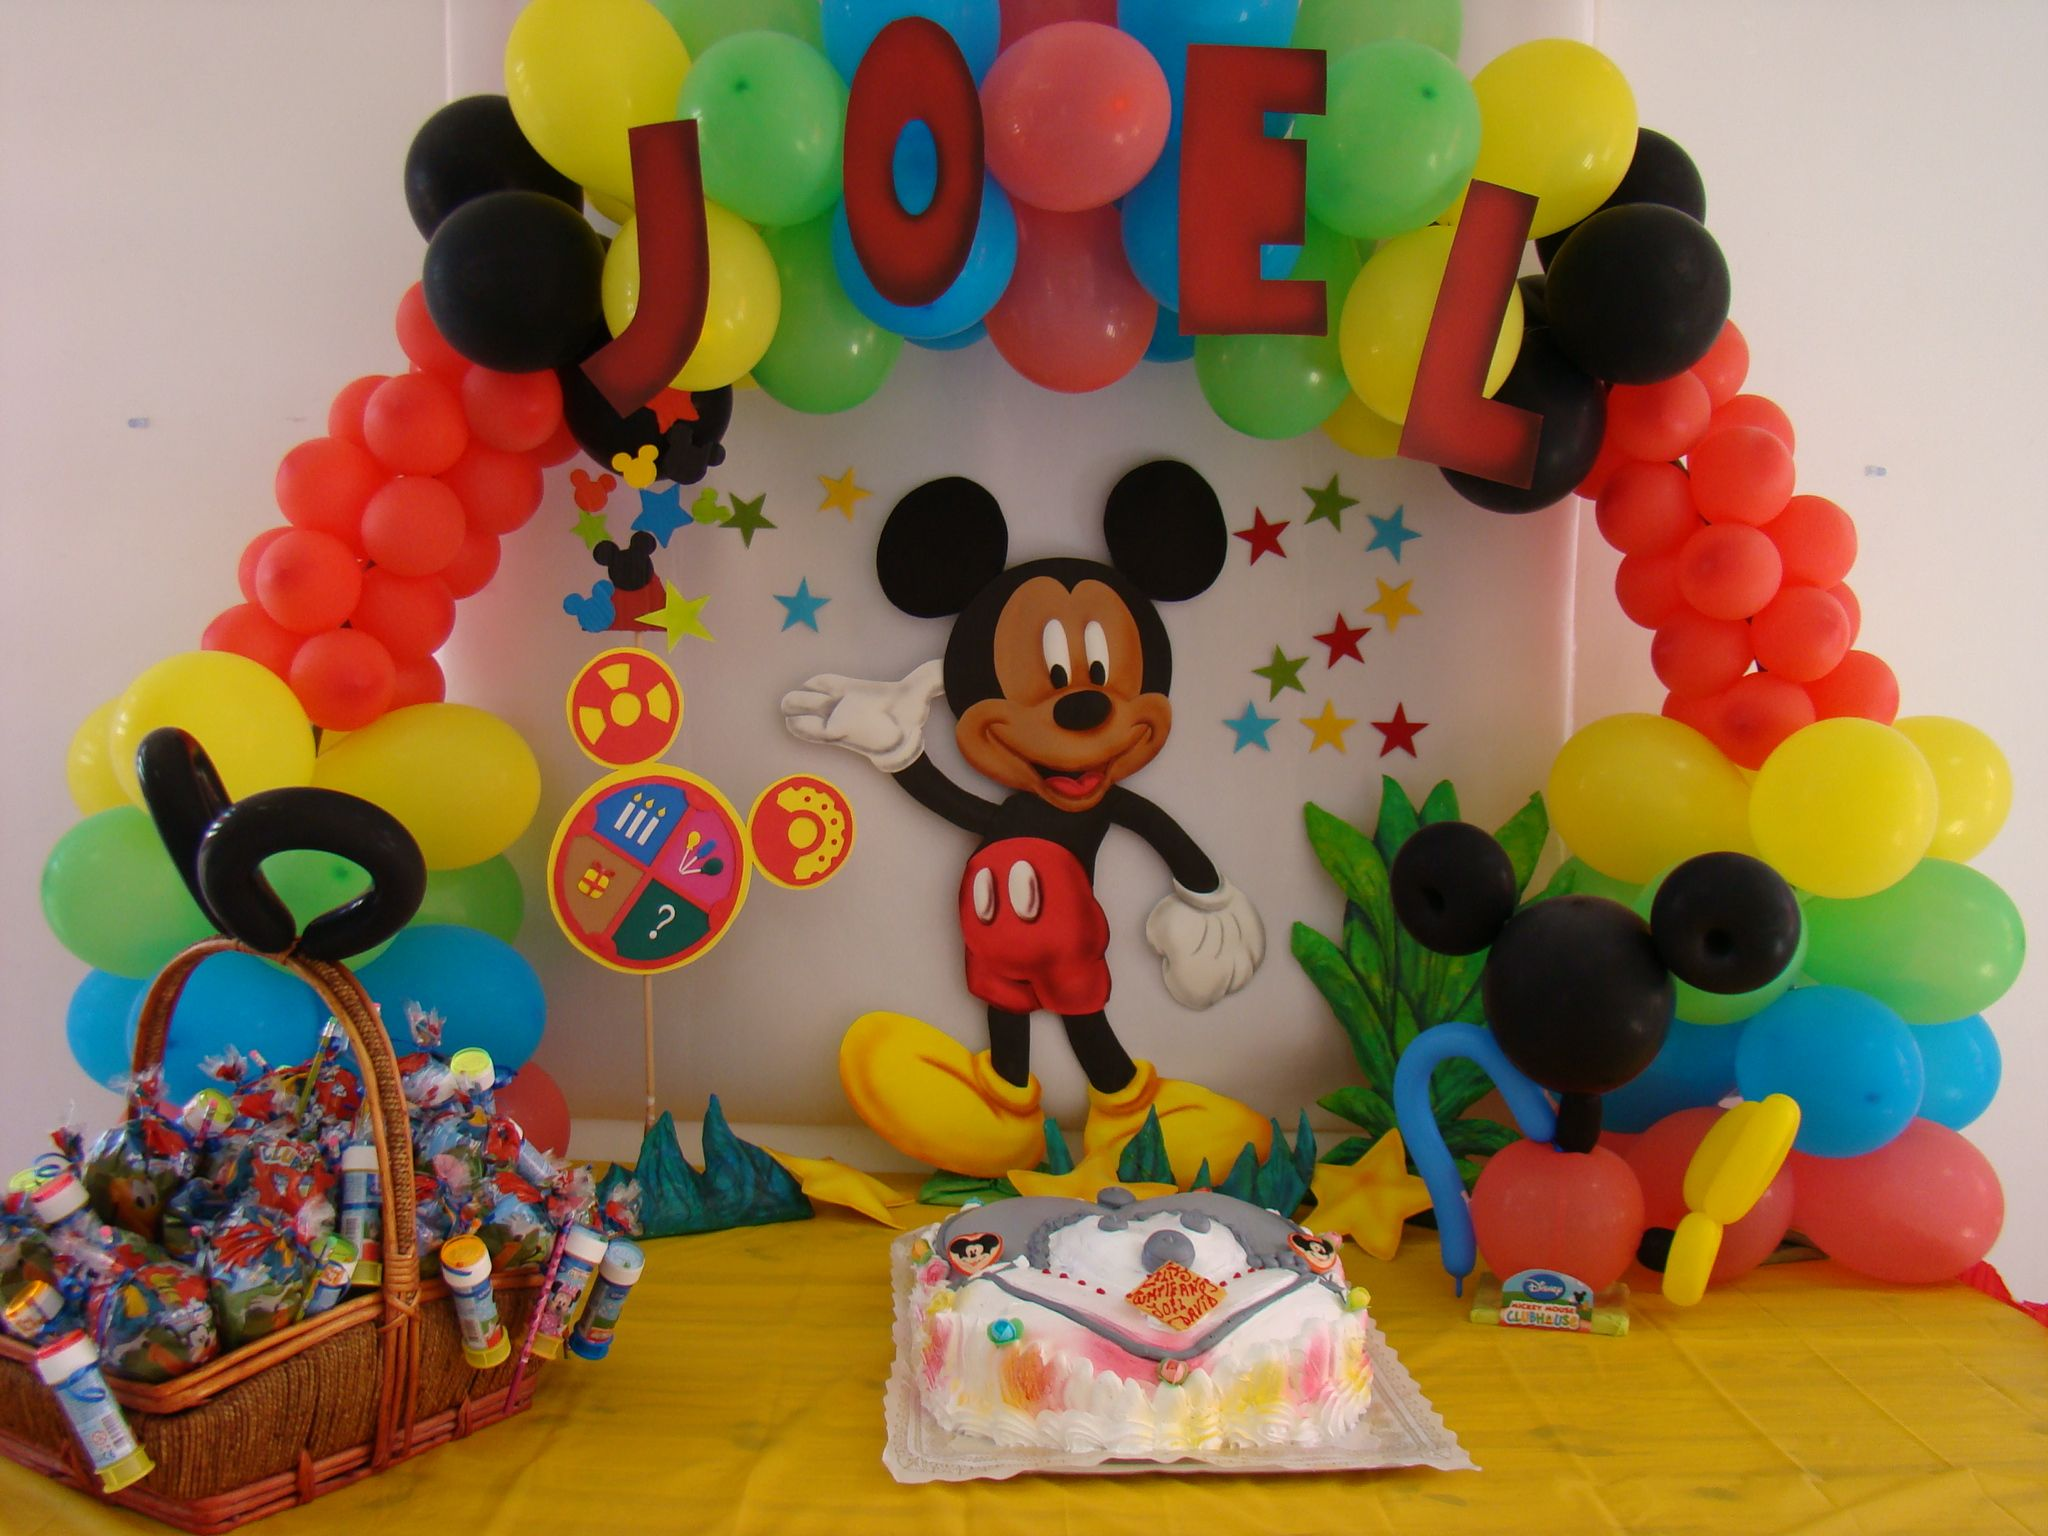 Decoraci n tem tica mickey mouse fiestisima ideas - Fiesta tematica mickey mouse ...